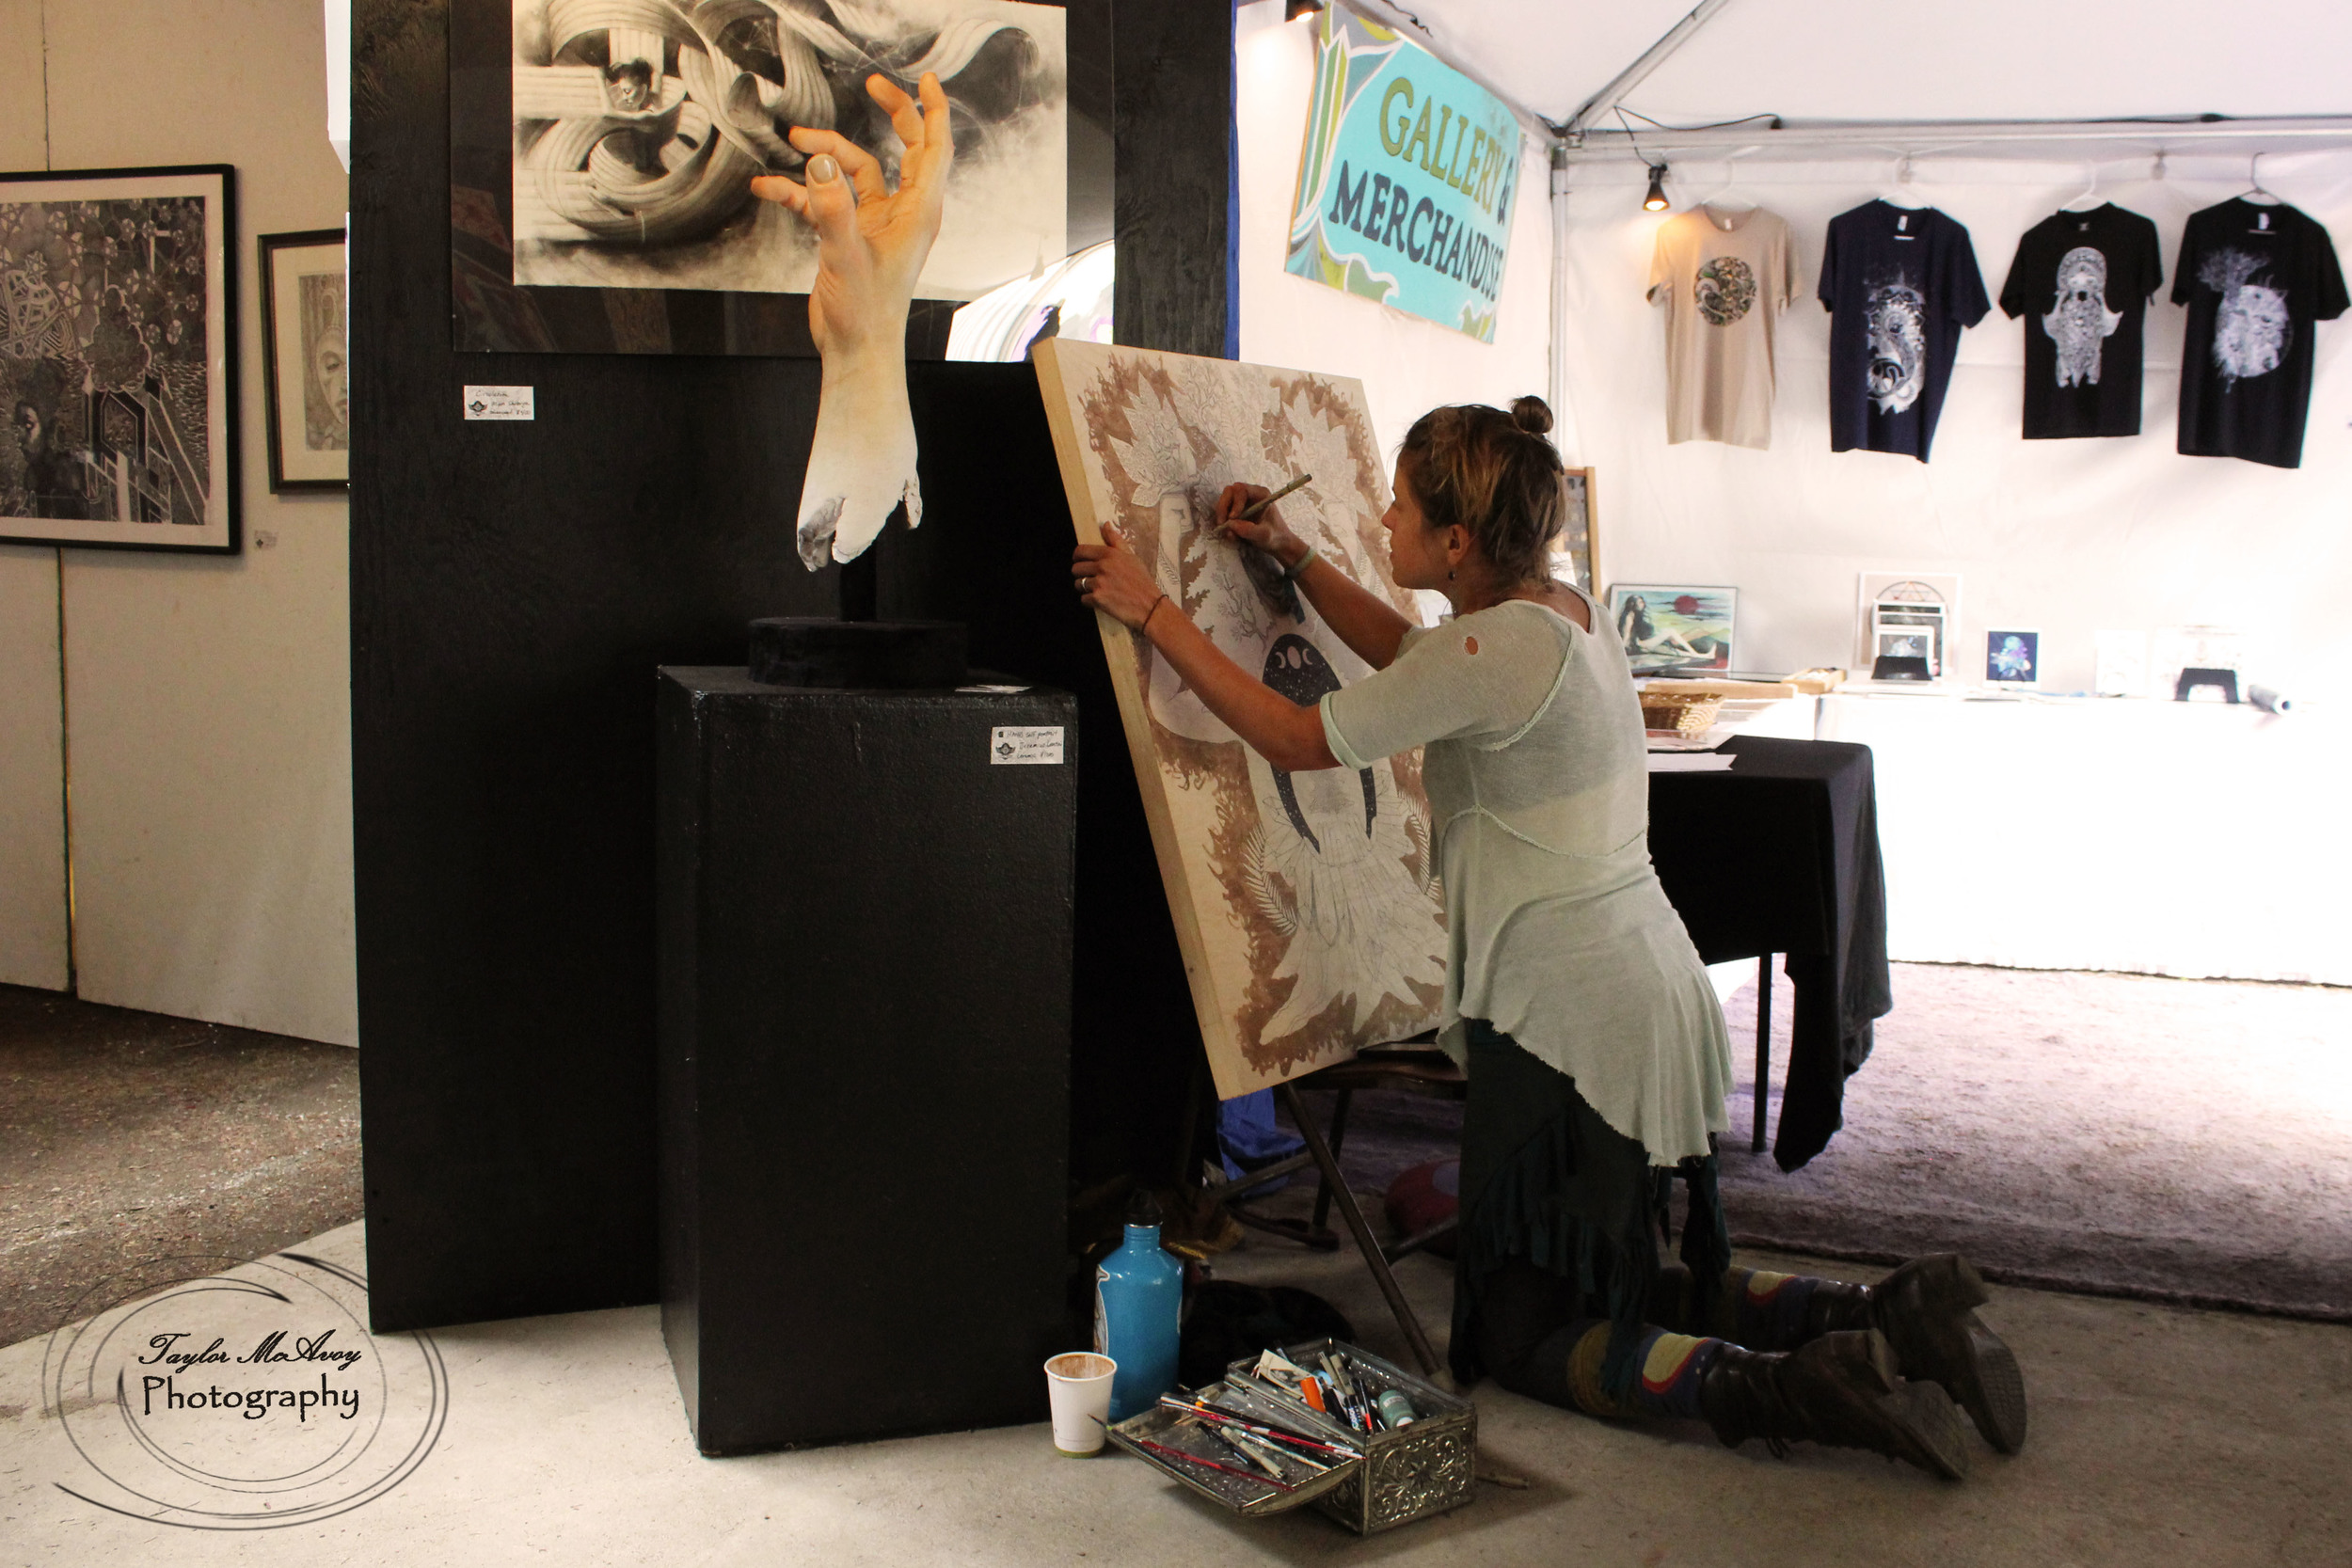 Artist Rose Drummond finishes a work in progress in the art tent full of paintings, abstract art and sculpture by Cascadian artists.